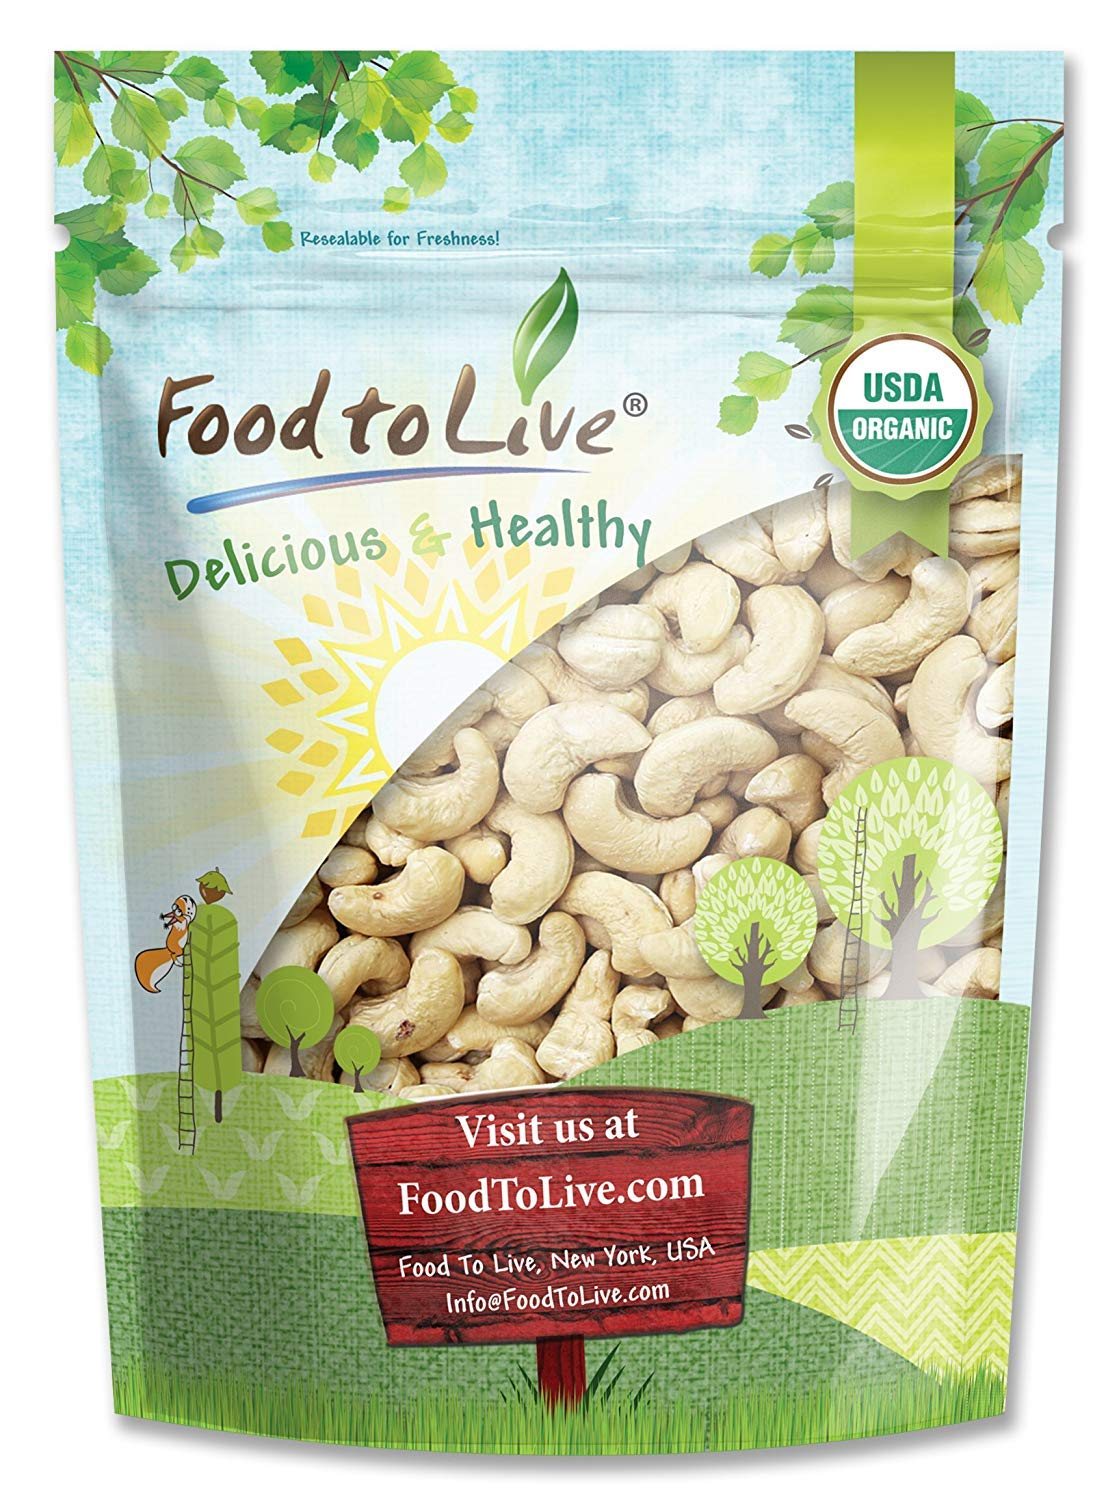 Organic Raw Cashews by Food to Live (Non-GMO, Whole, Unsalted, Bulk) — 8 Ounces